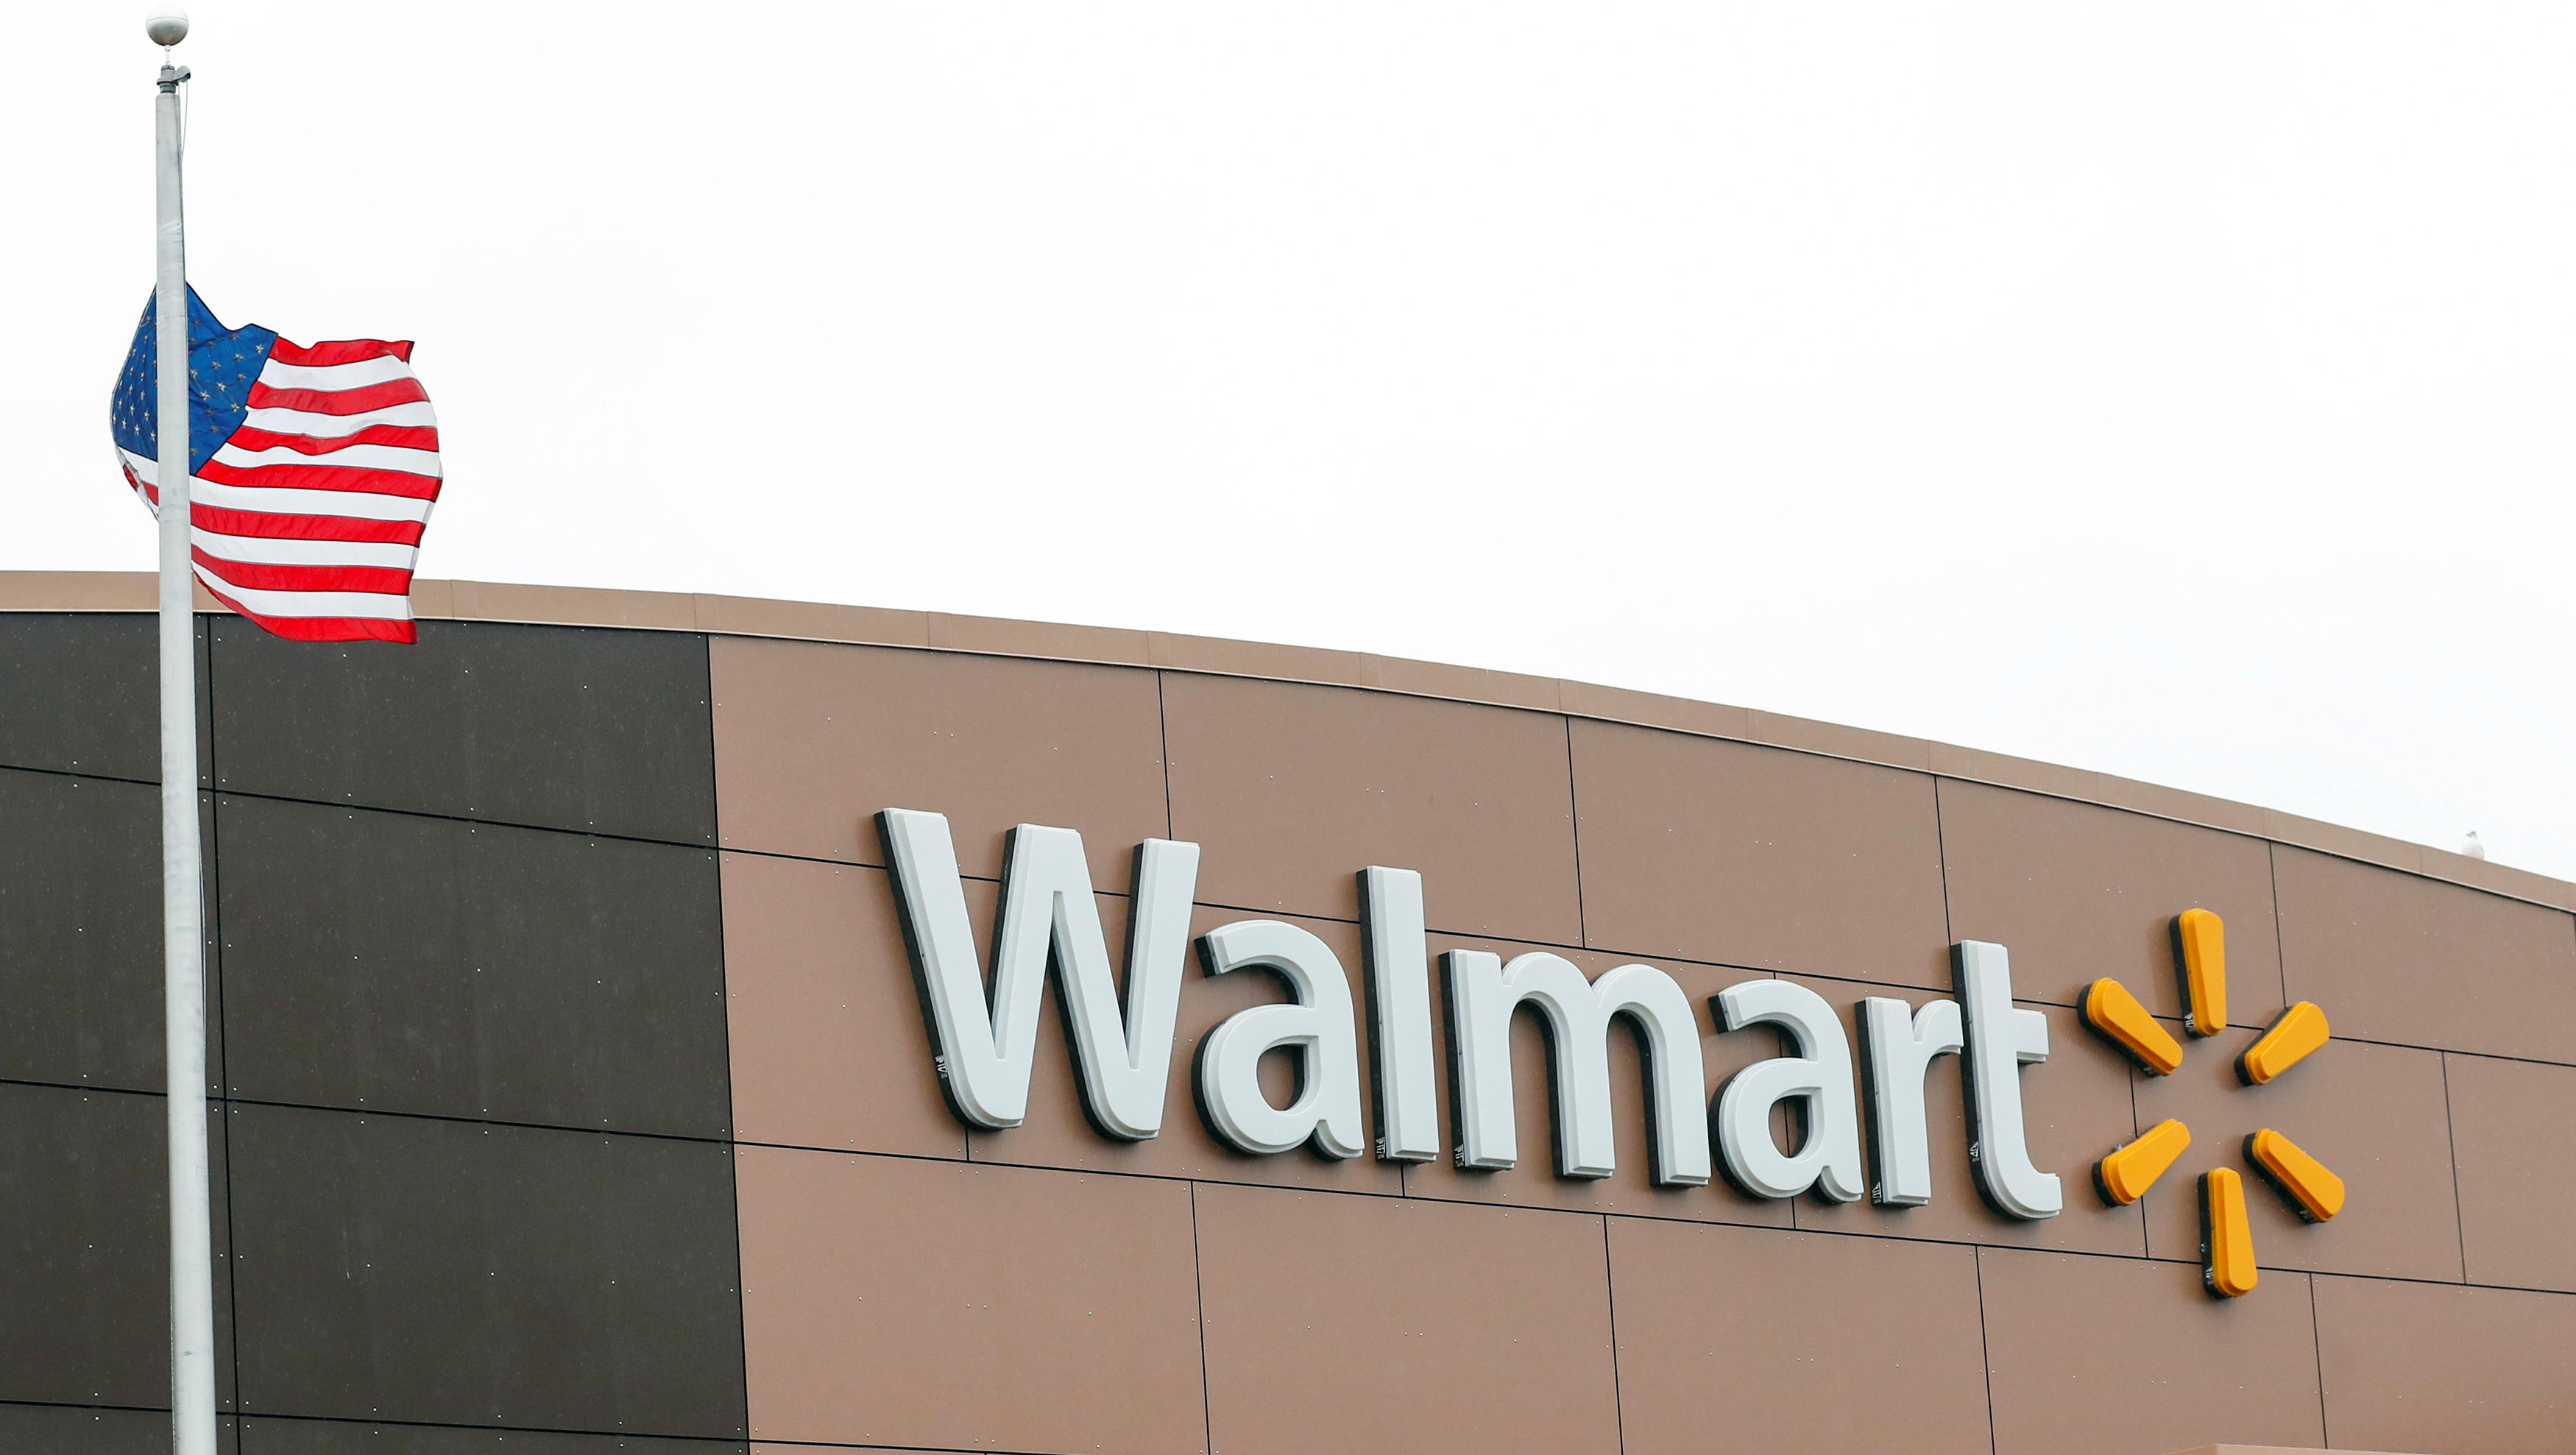 Walmart patents audio surveillance technology to record customers